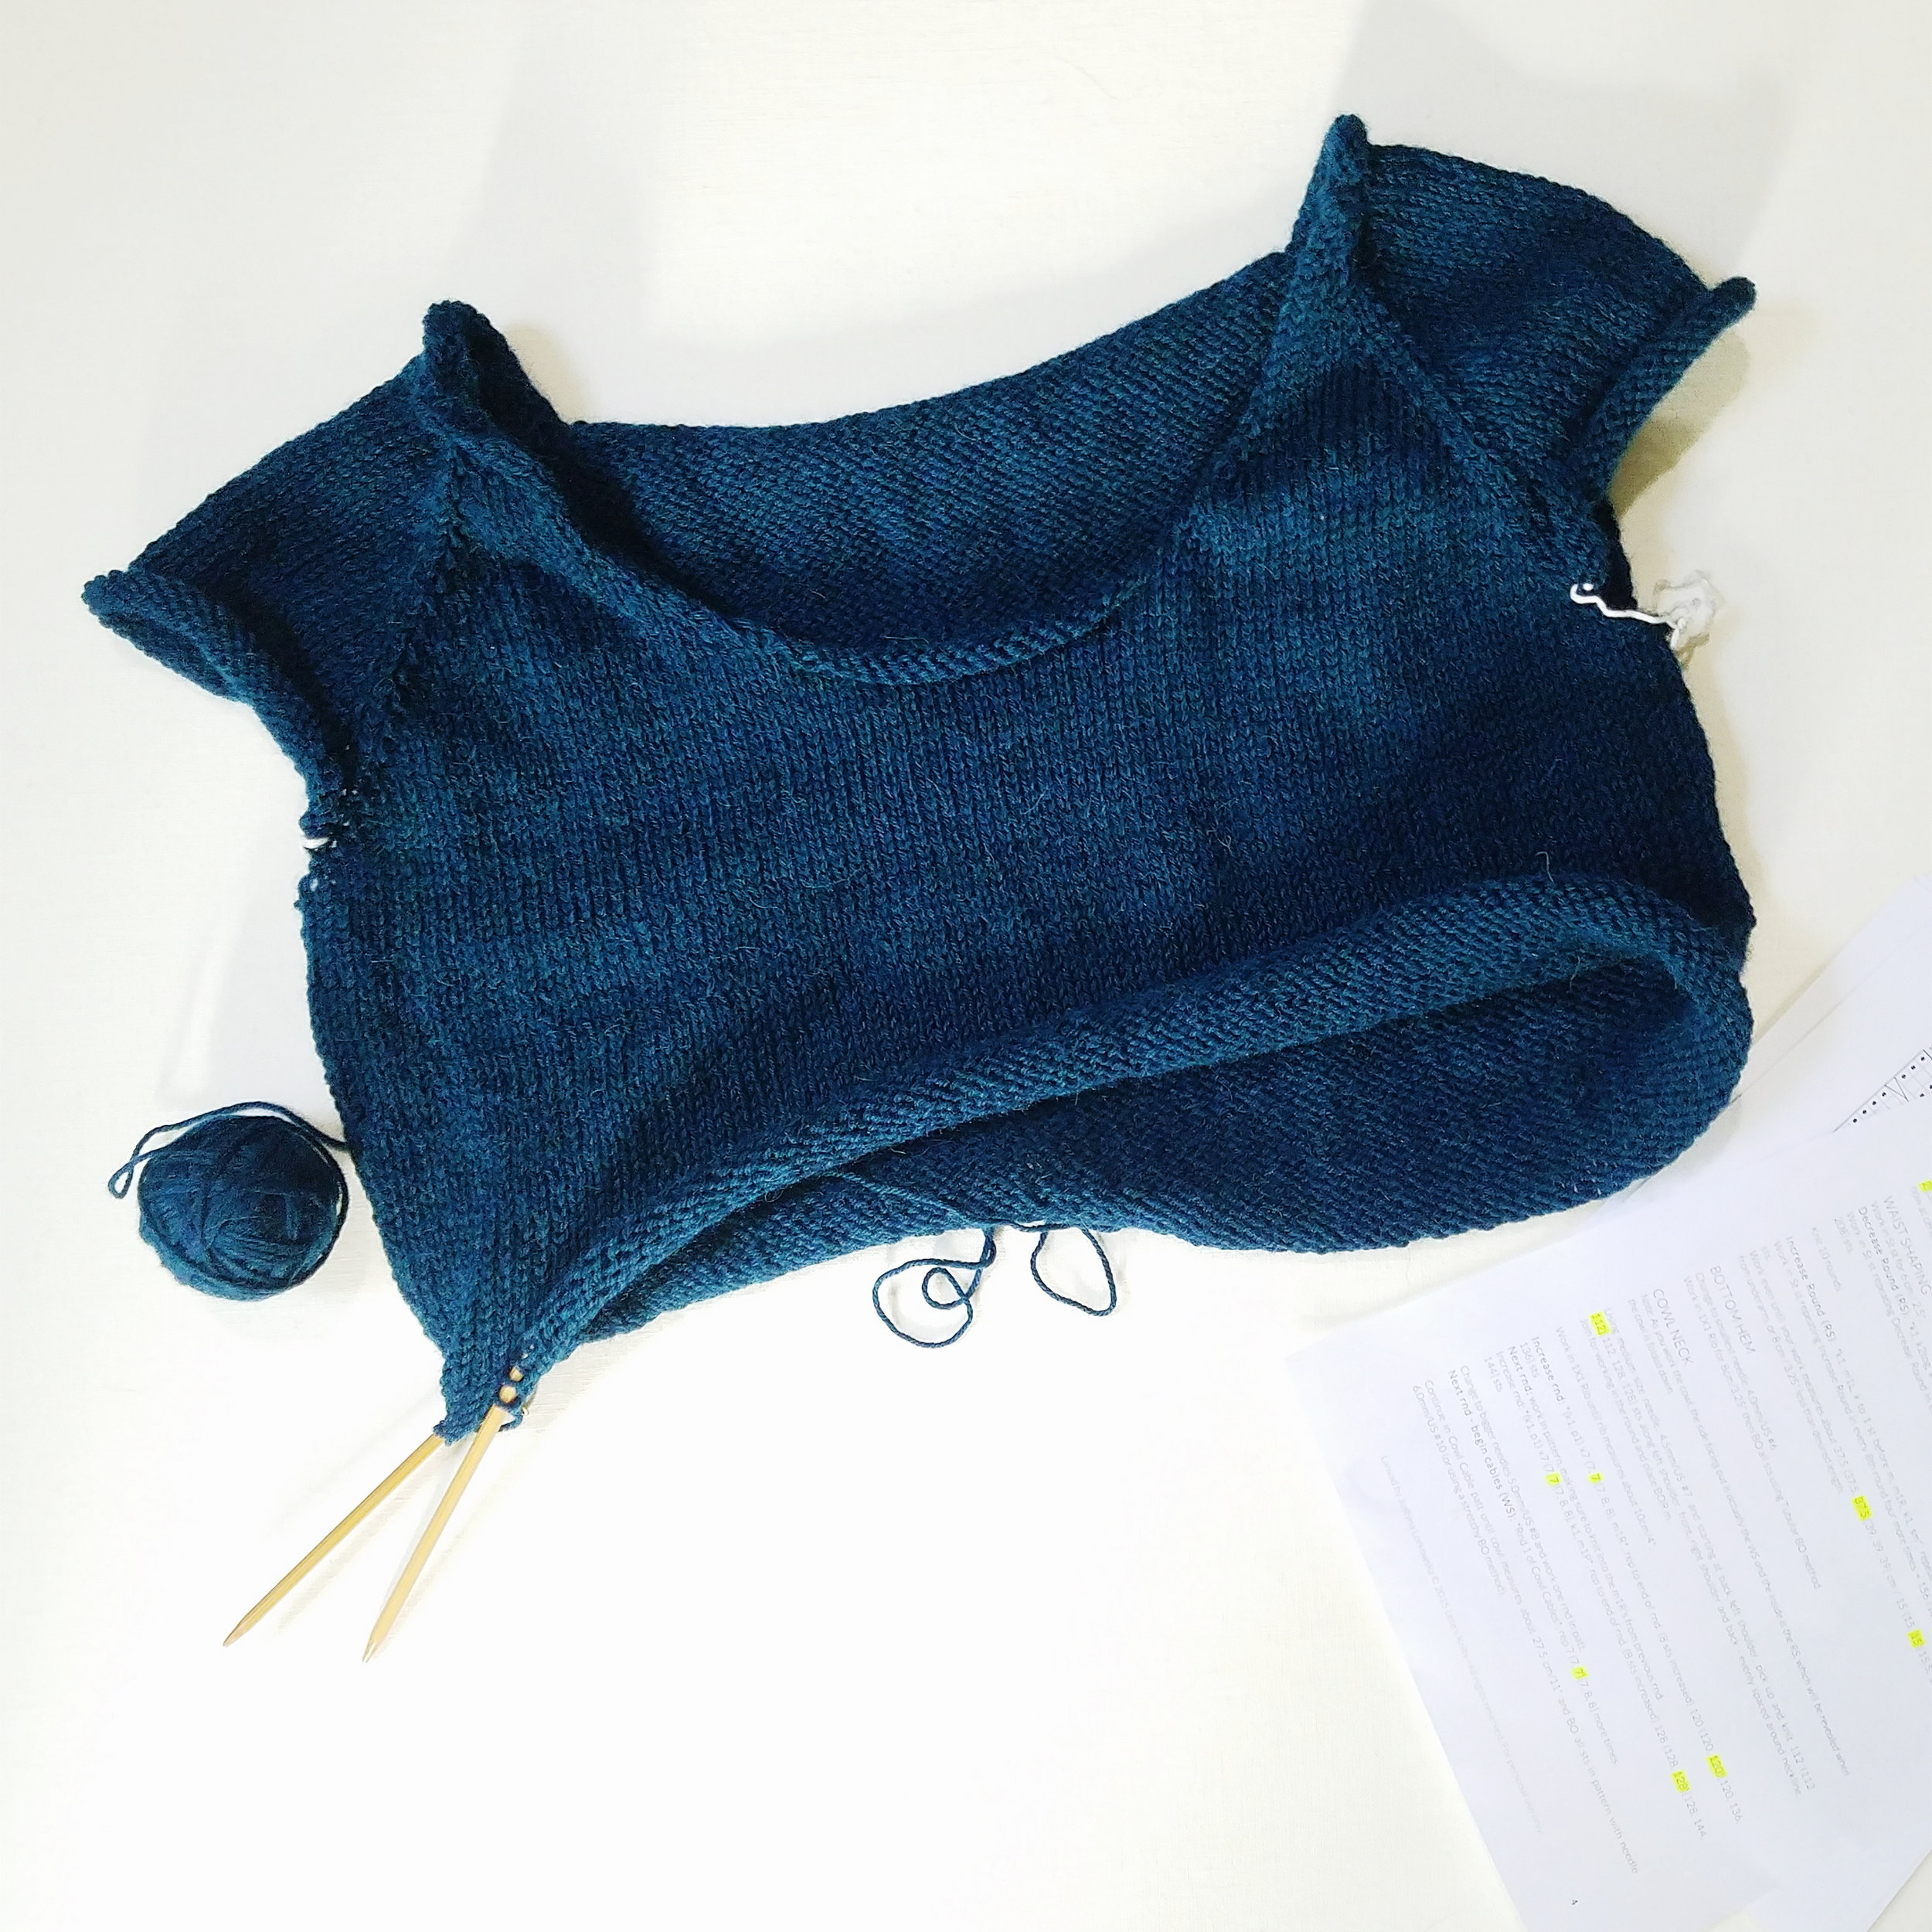 Summer is the best time to knit a wool sweater, right?